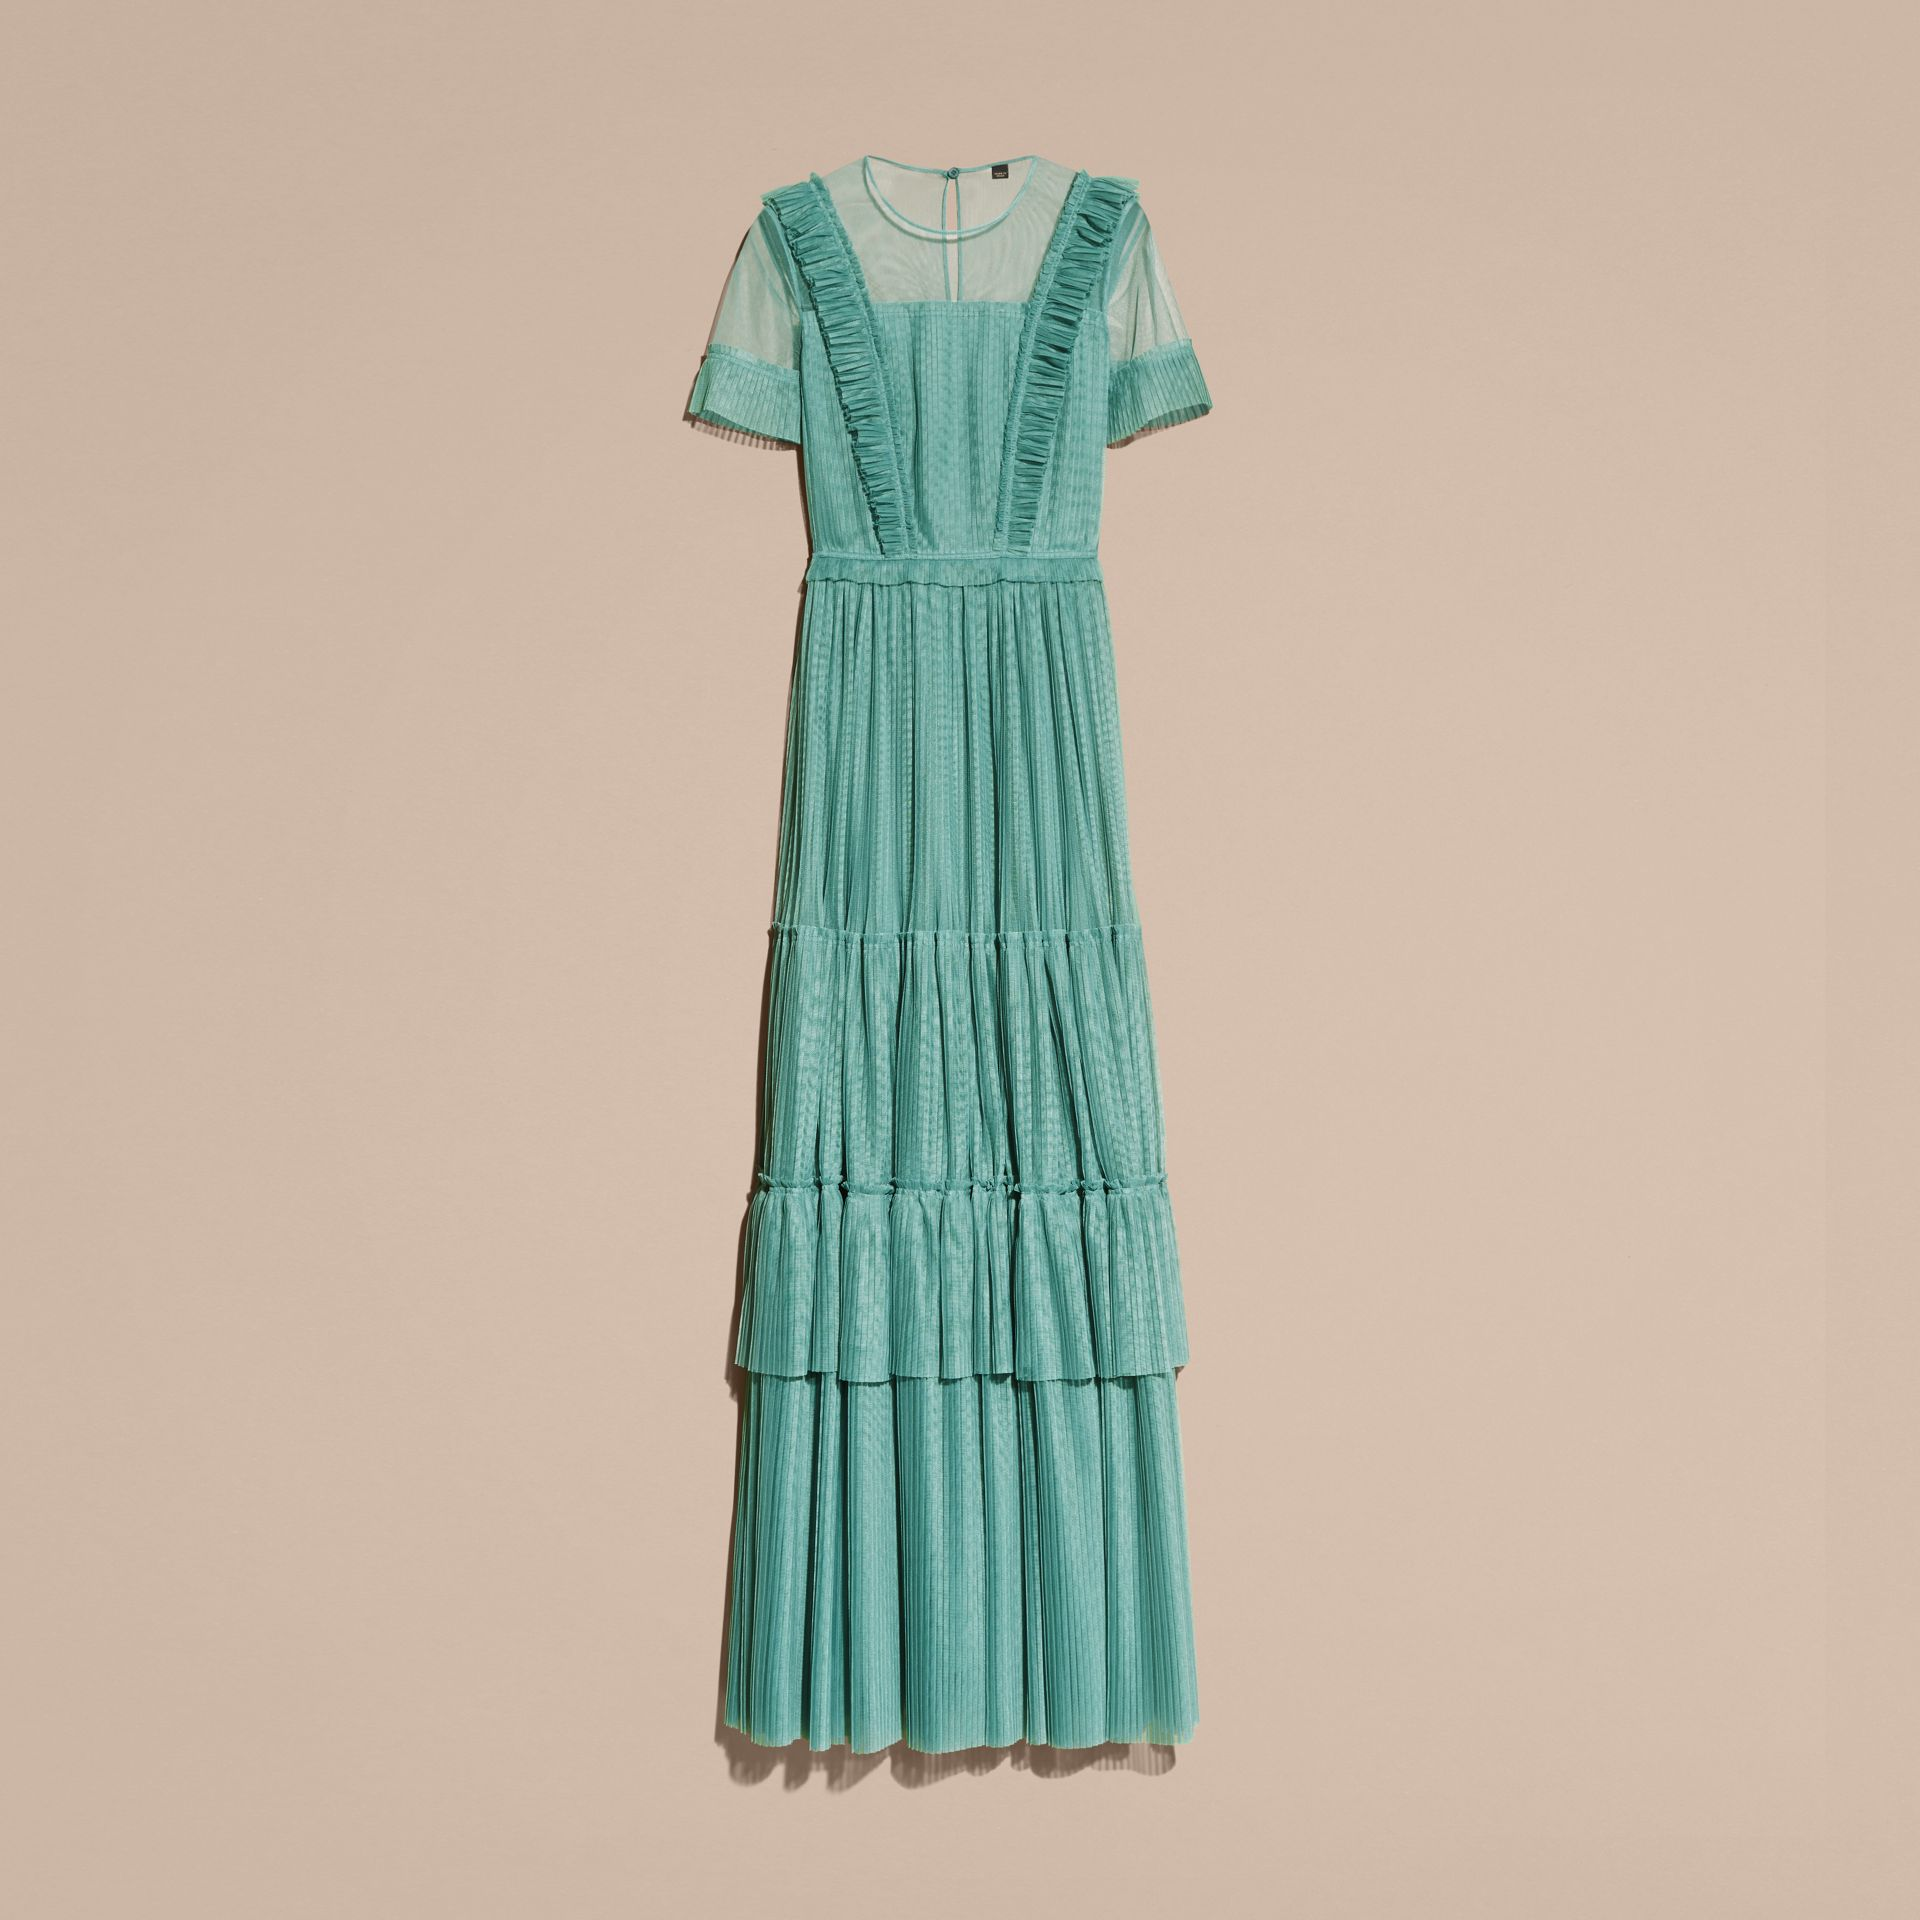 Aqua green Ruffle Detail Floor-length Dress - gallery image 4